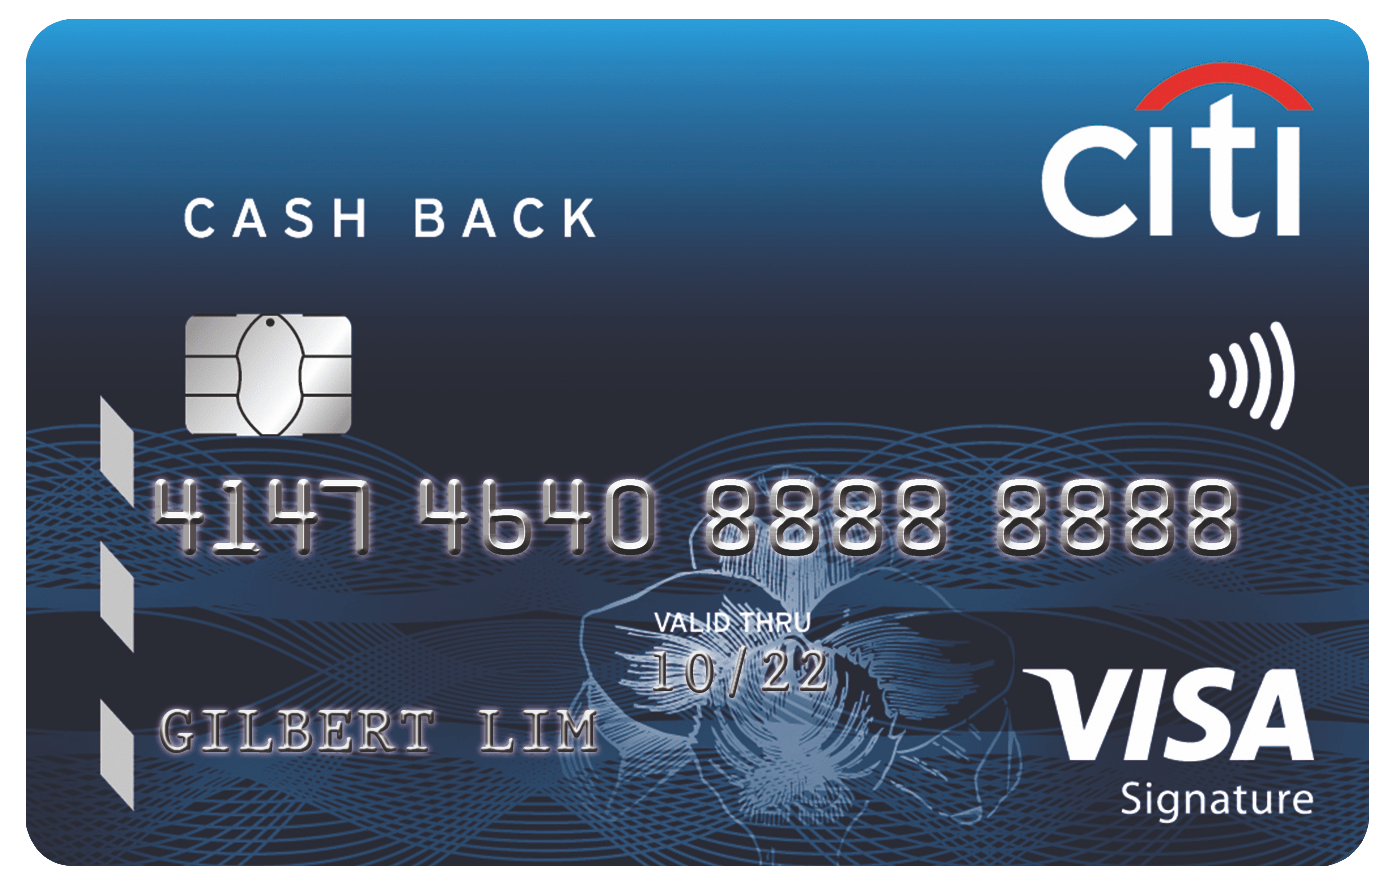 Citi Cash Back Credit Card Singapore 2018 Trusted Review